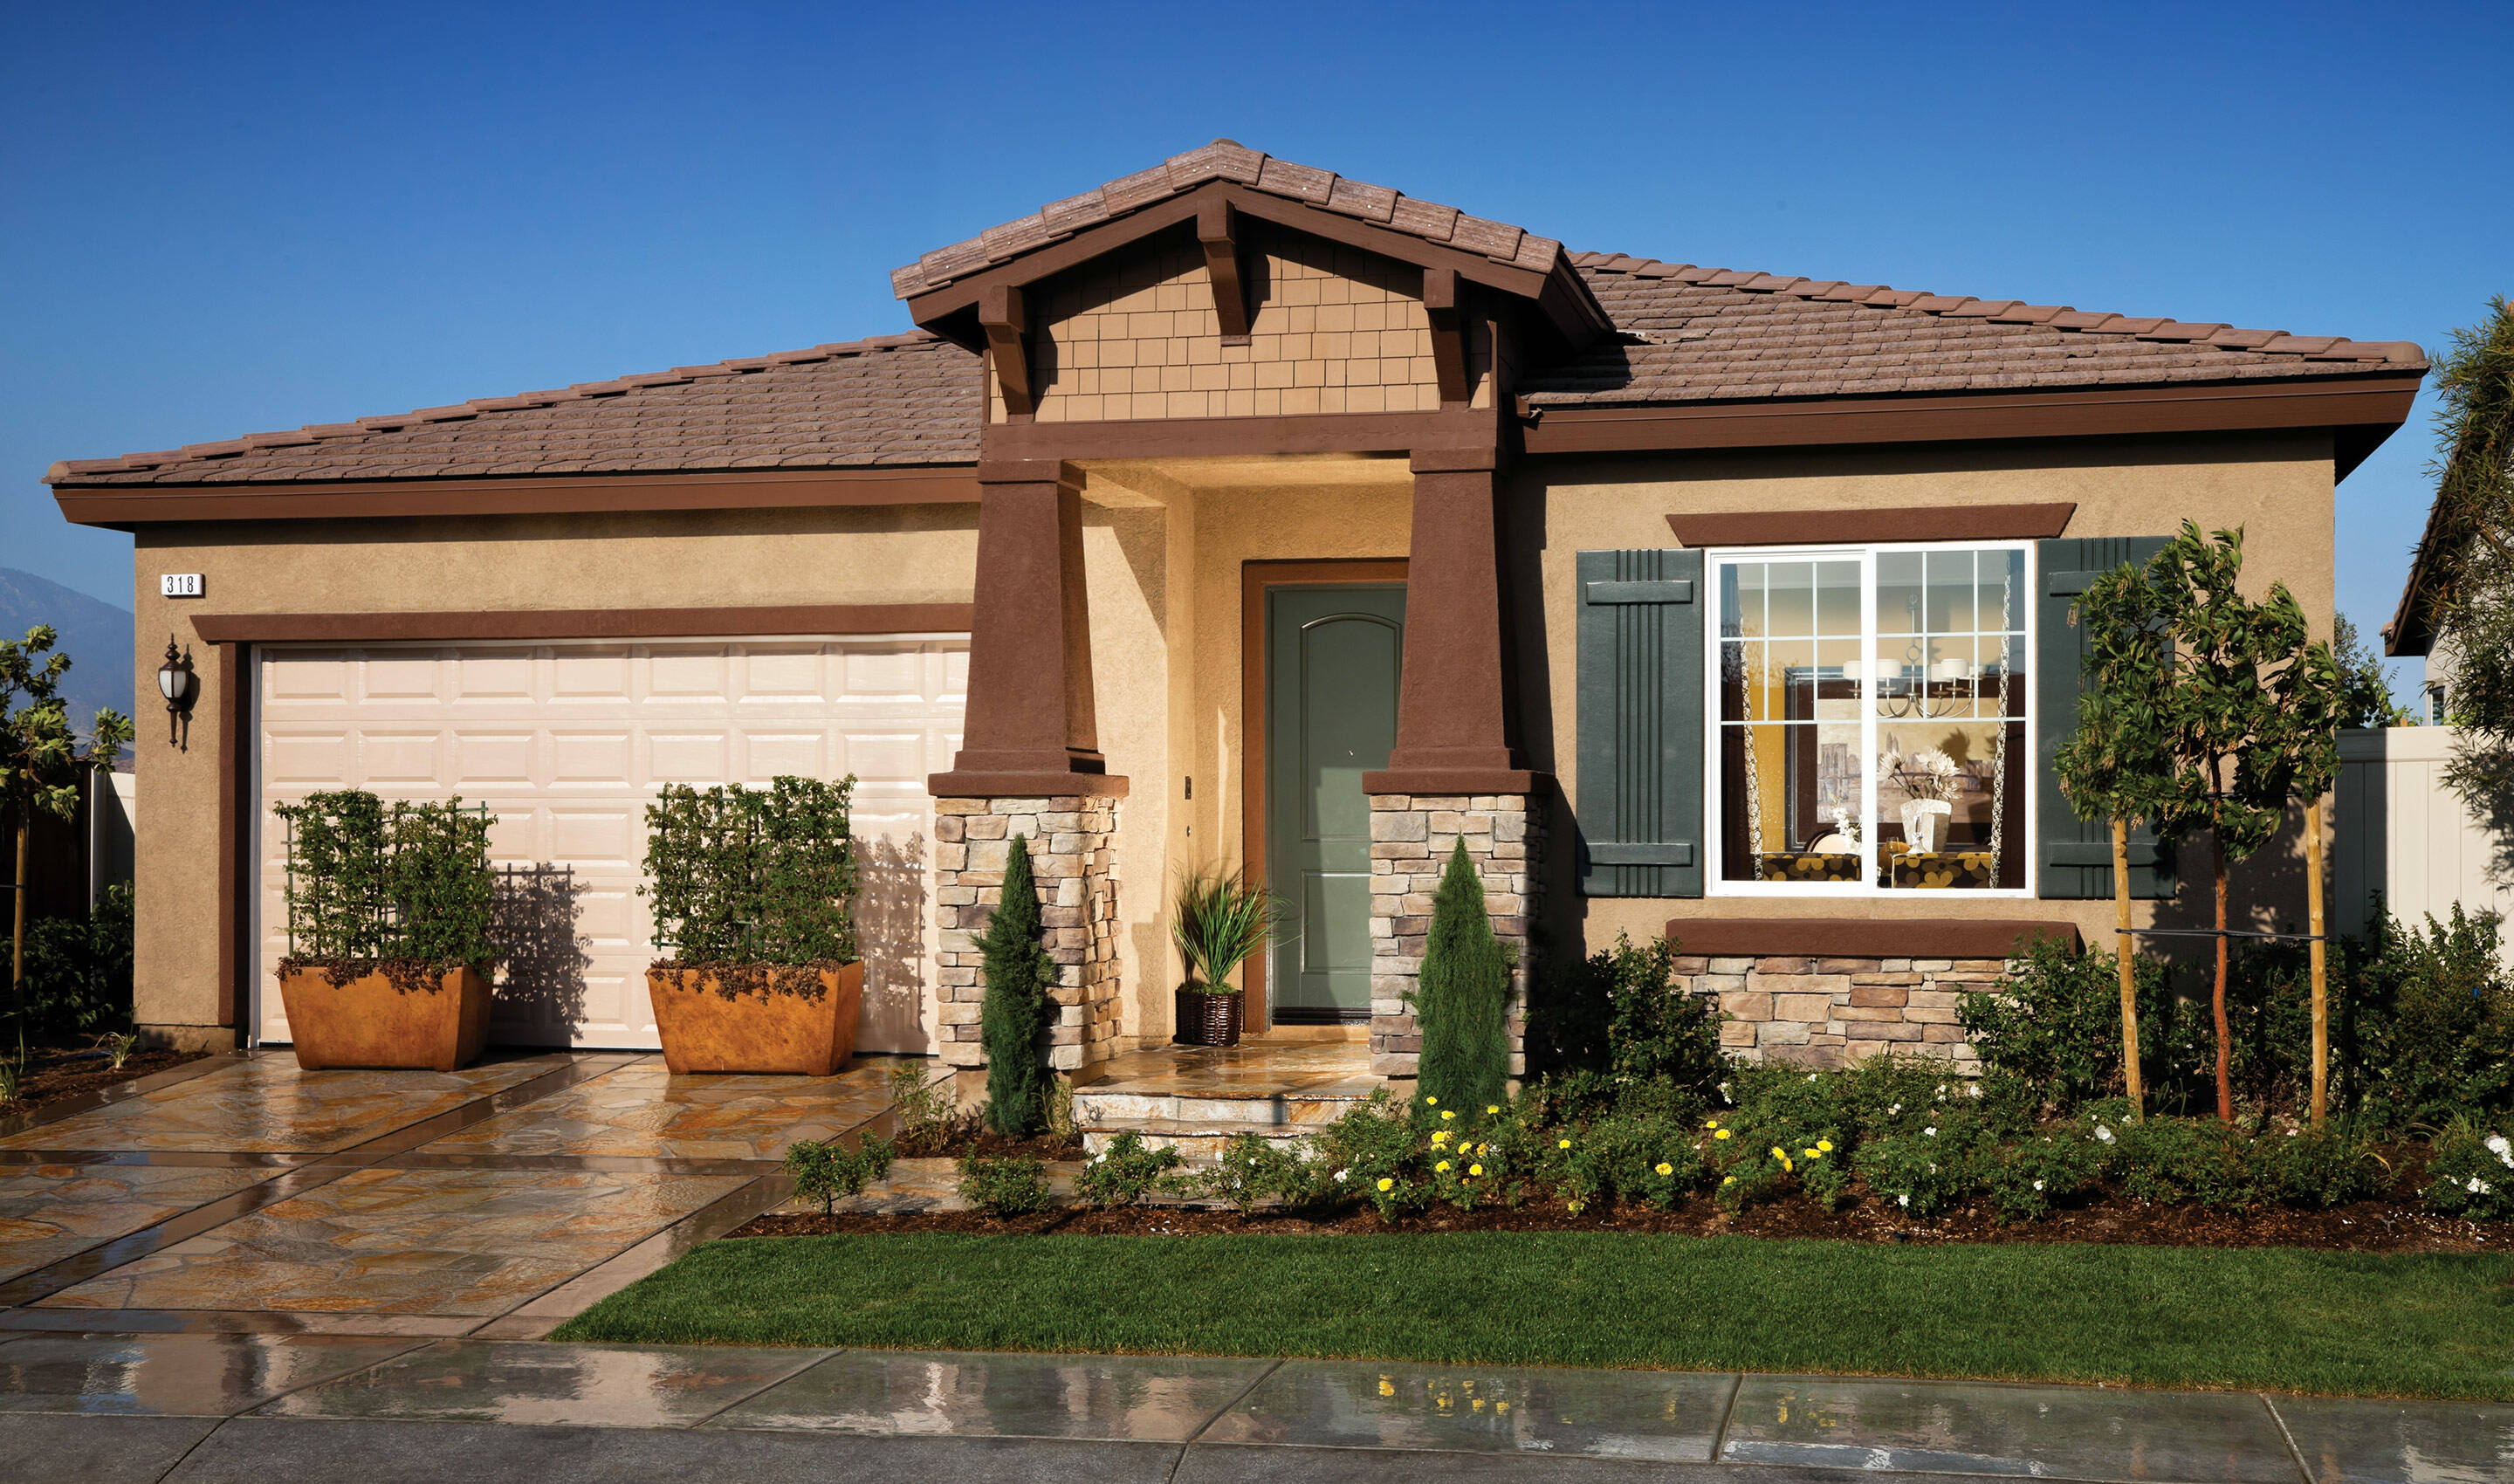 Rockwood Ext - Beaumont - CA - Position 1